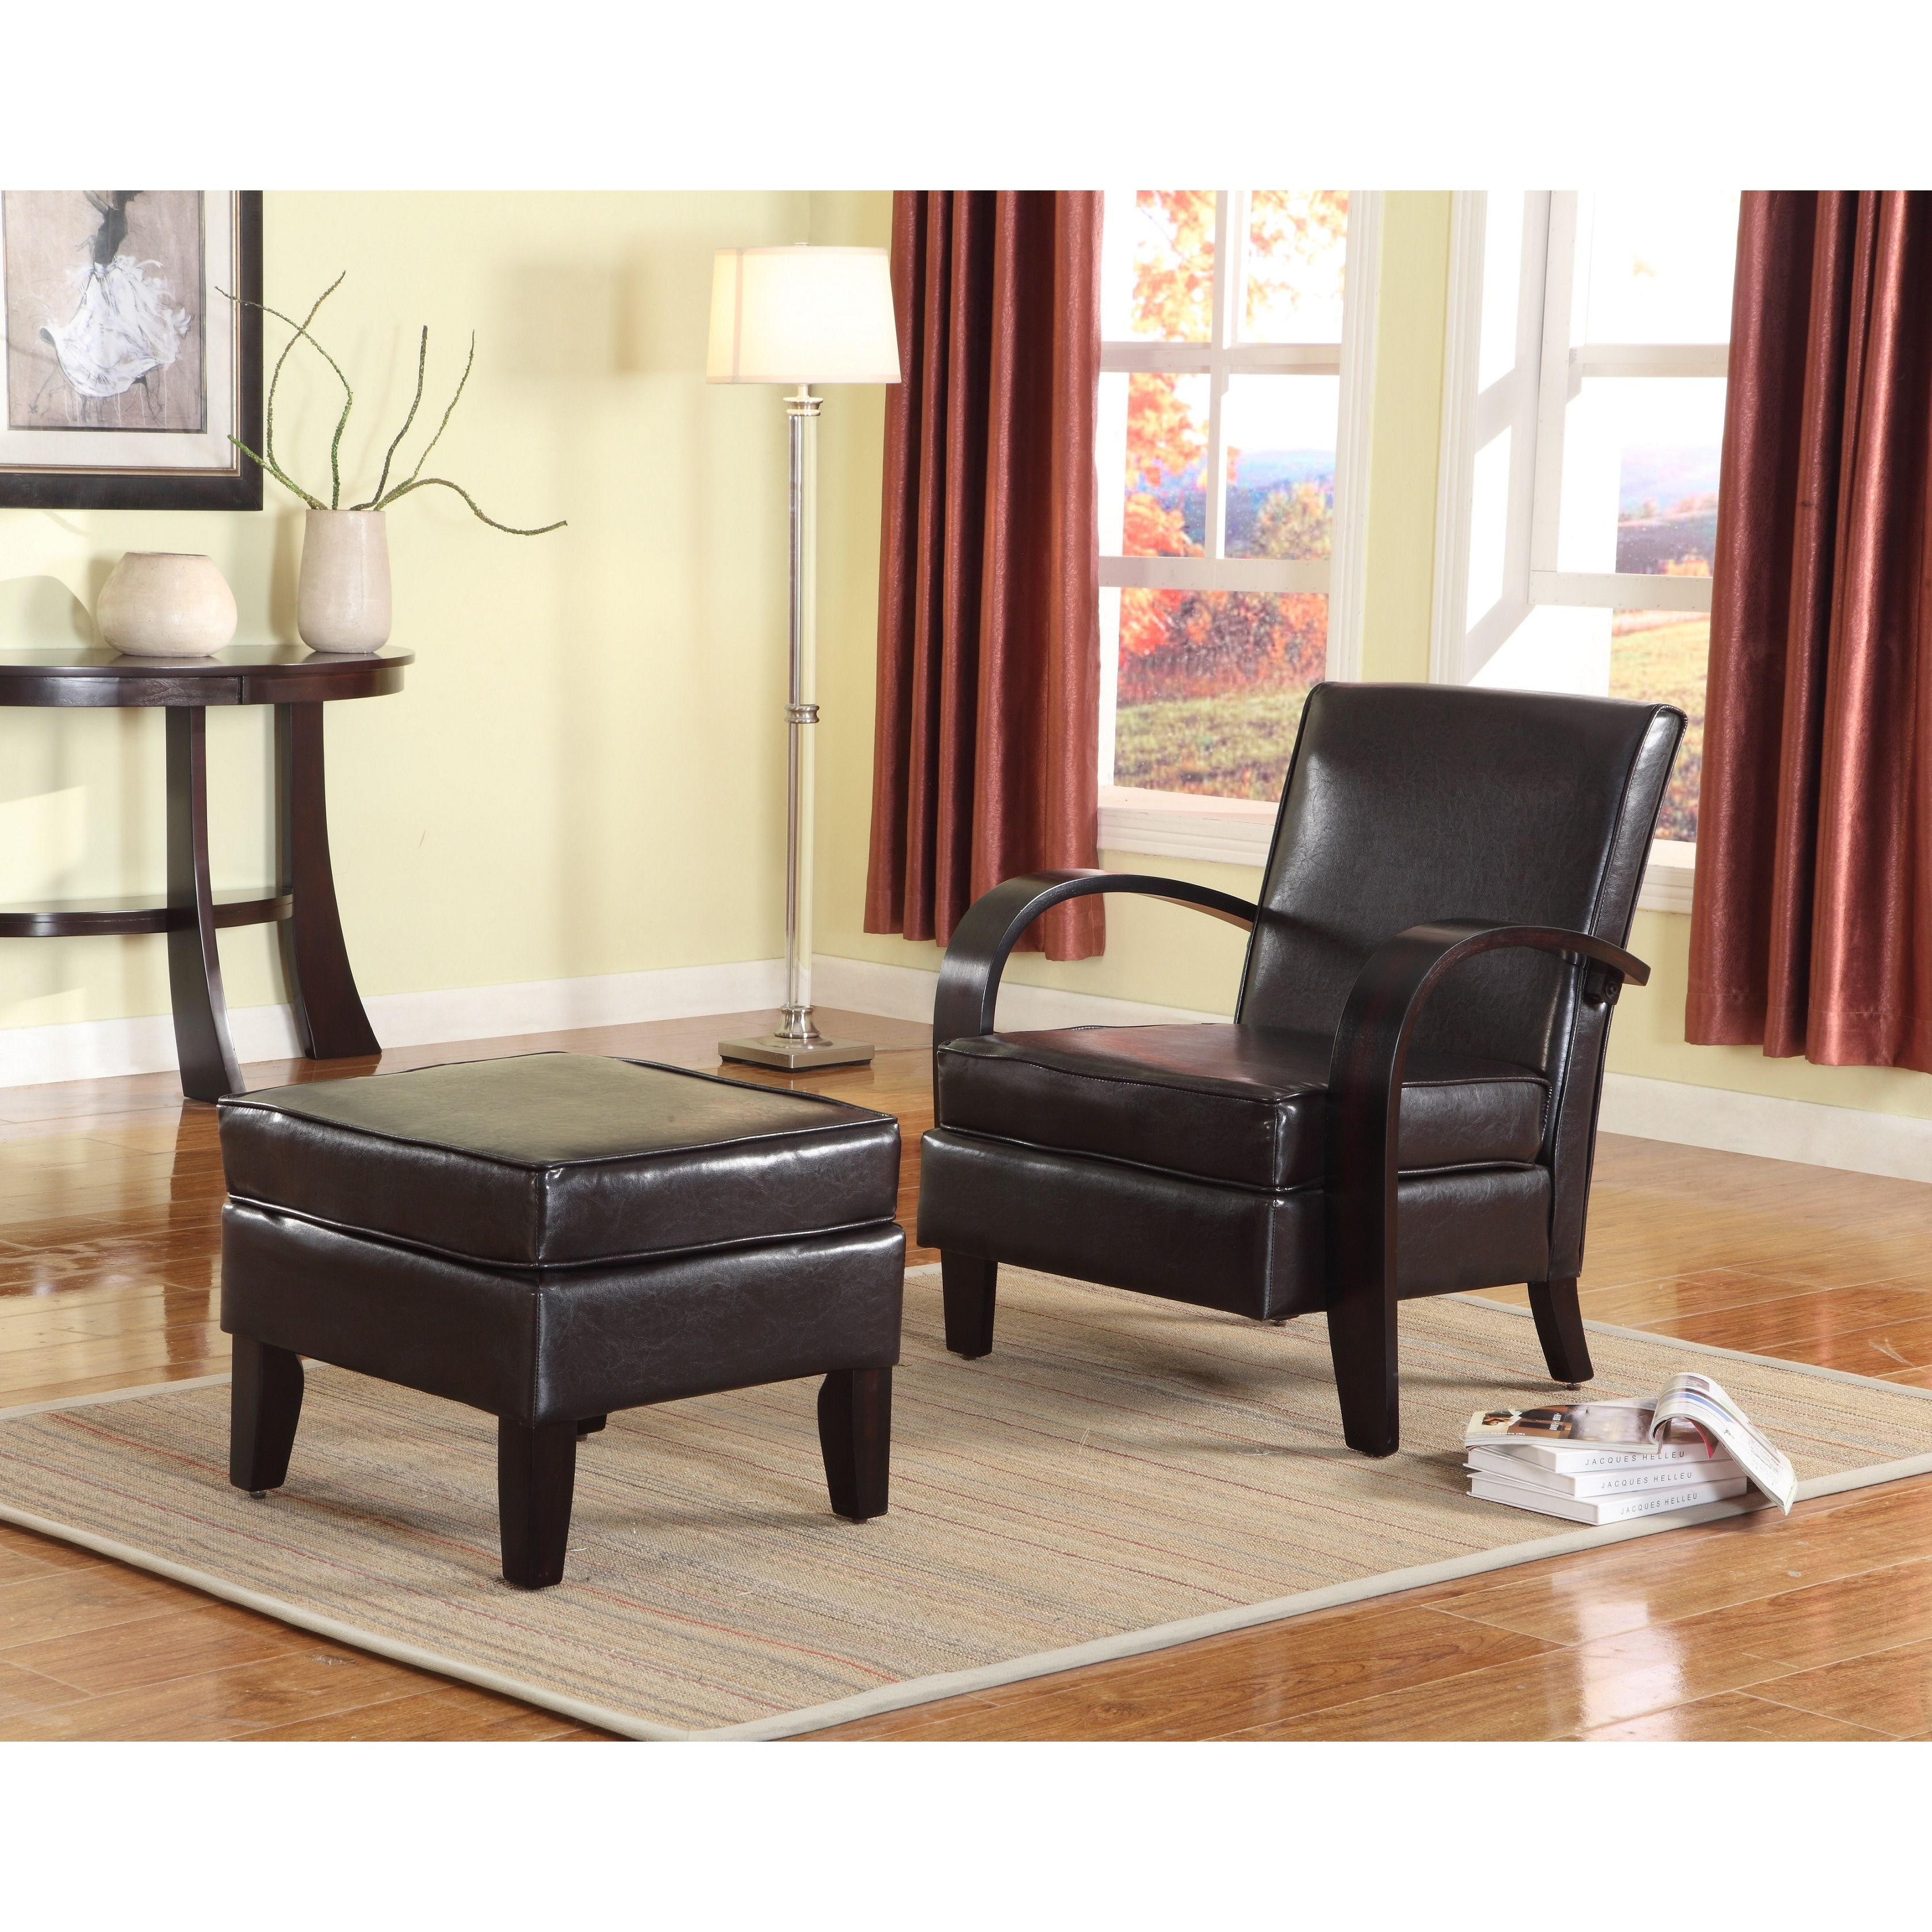 Shop Wonda Brown Bonded Leather Accent Arm Chair With